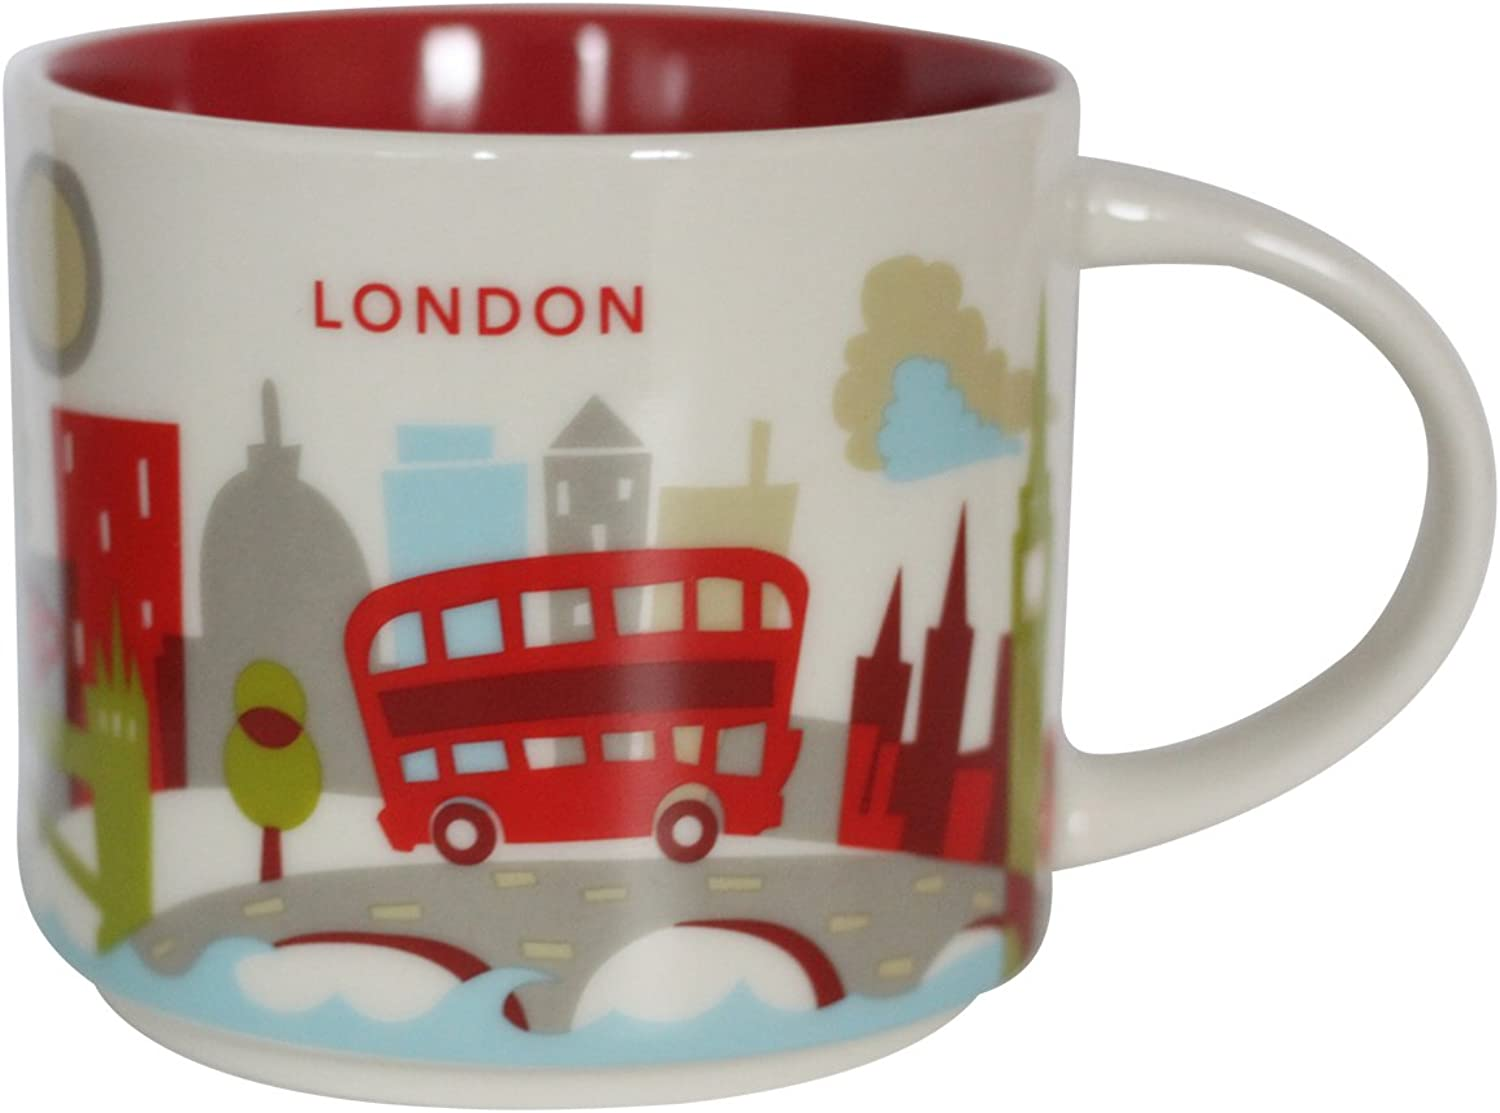 New Starbucks London You are Here Mug Coffee Cup Big Ben Gherkin St Pauls Eye Thames Tower Bridge YAH Coffee Cup